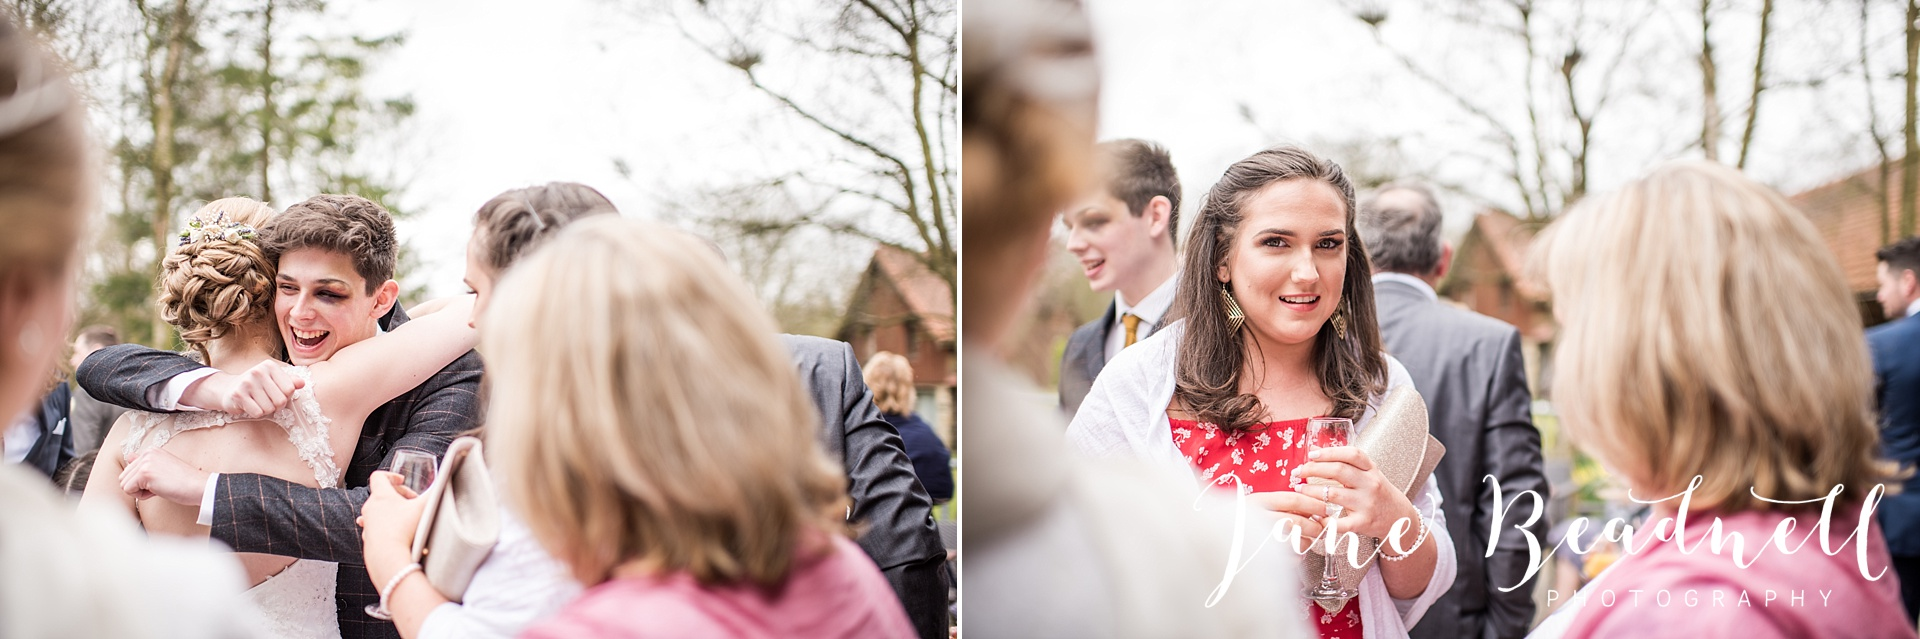 Otley Chevin Lodge wedding photography by Jane Beadnell Photography Leeds_0072